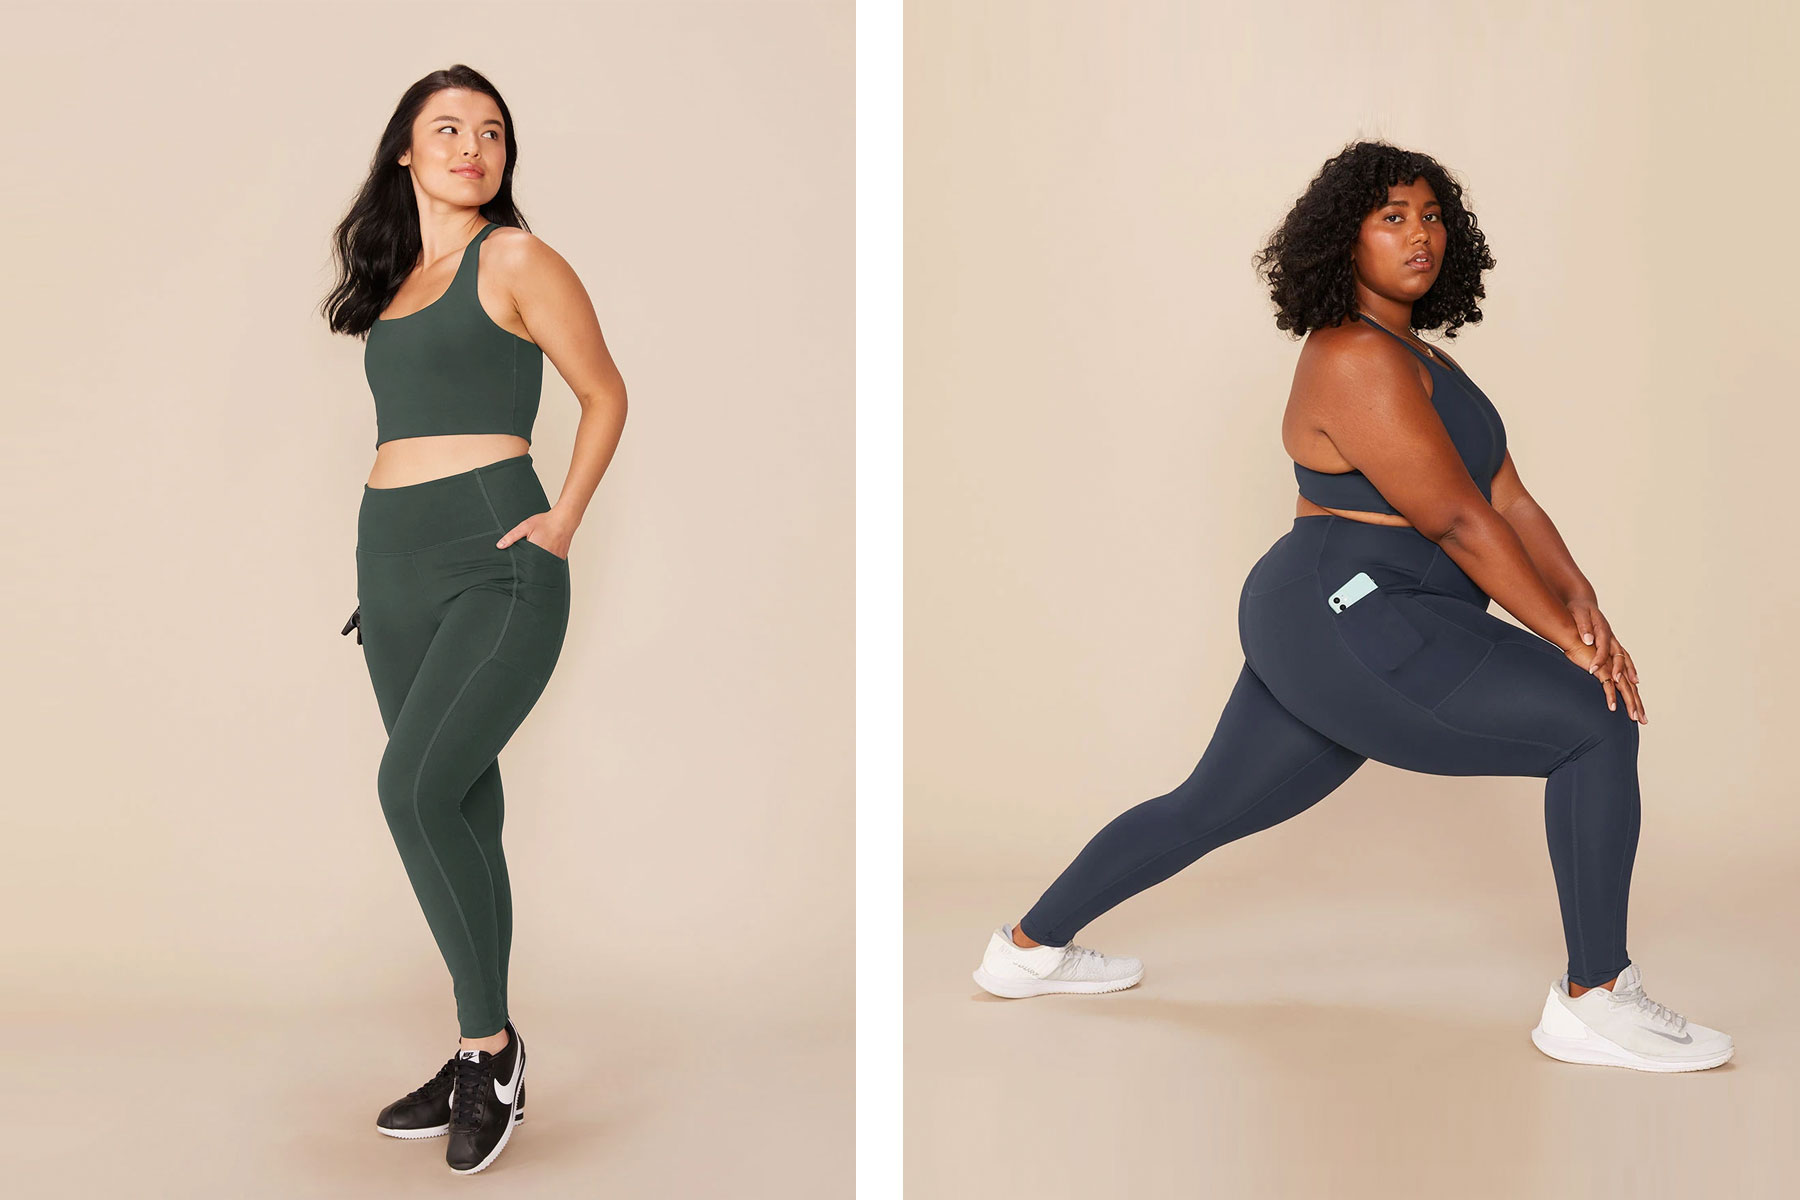 Women wearing dark green and navy sports bras and leggings